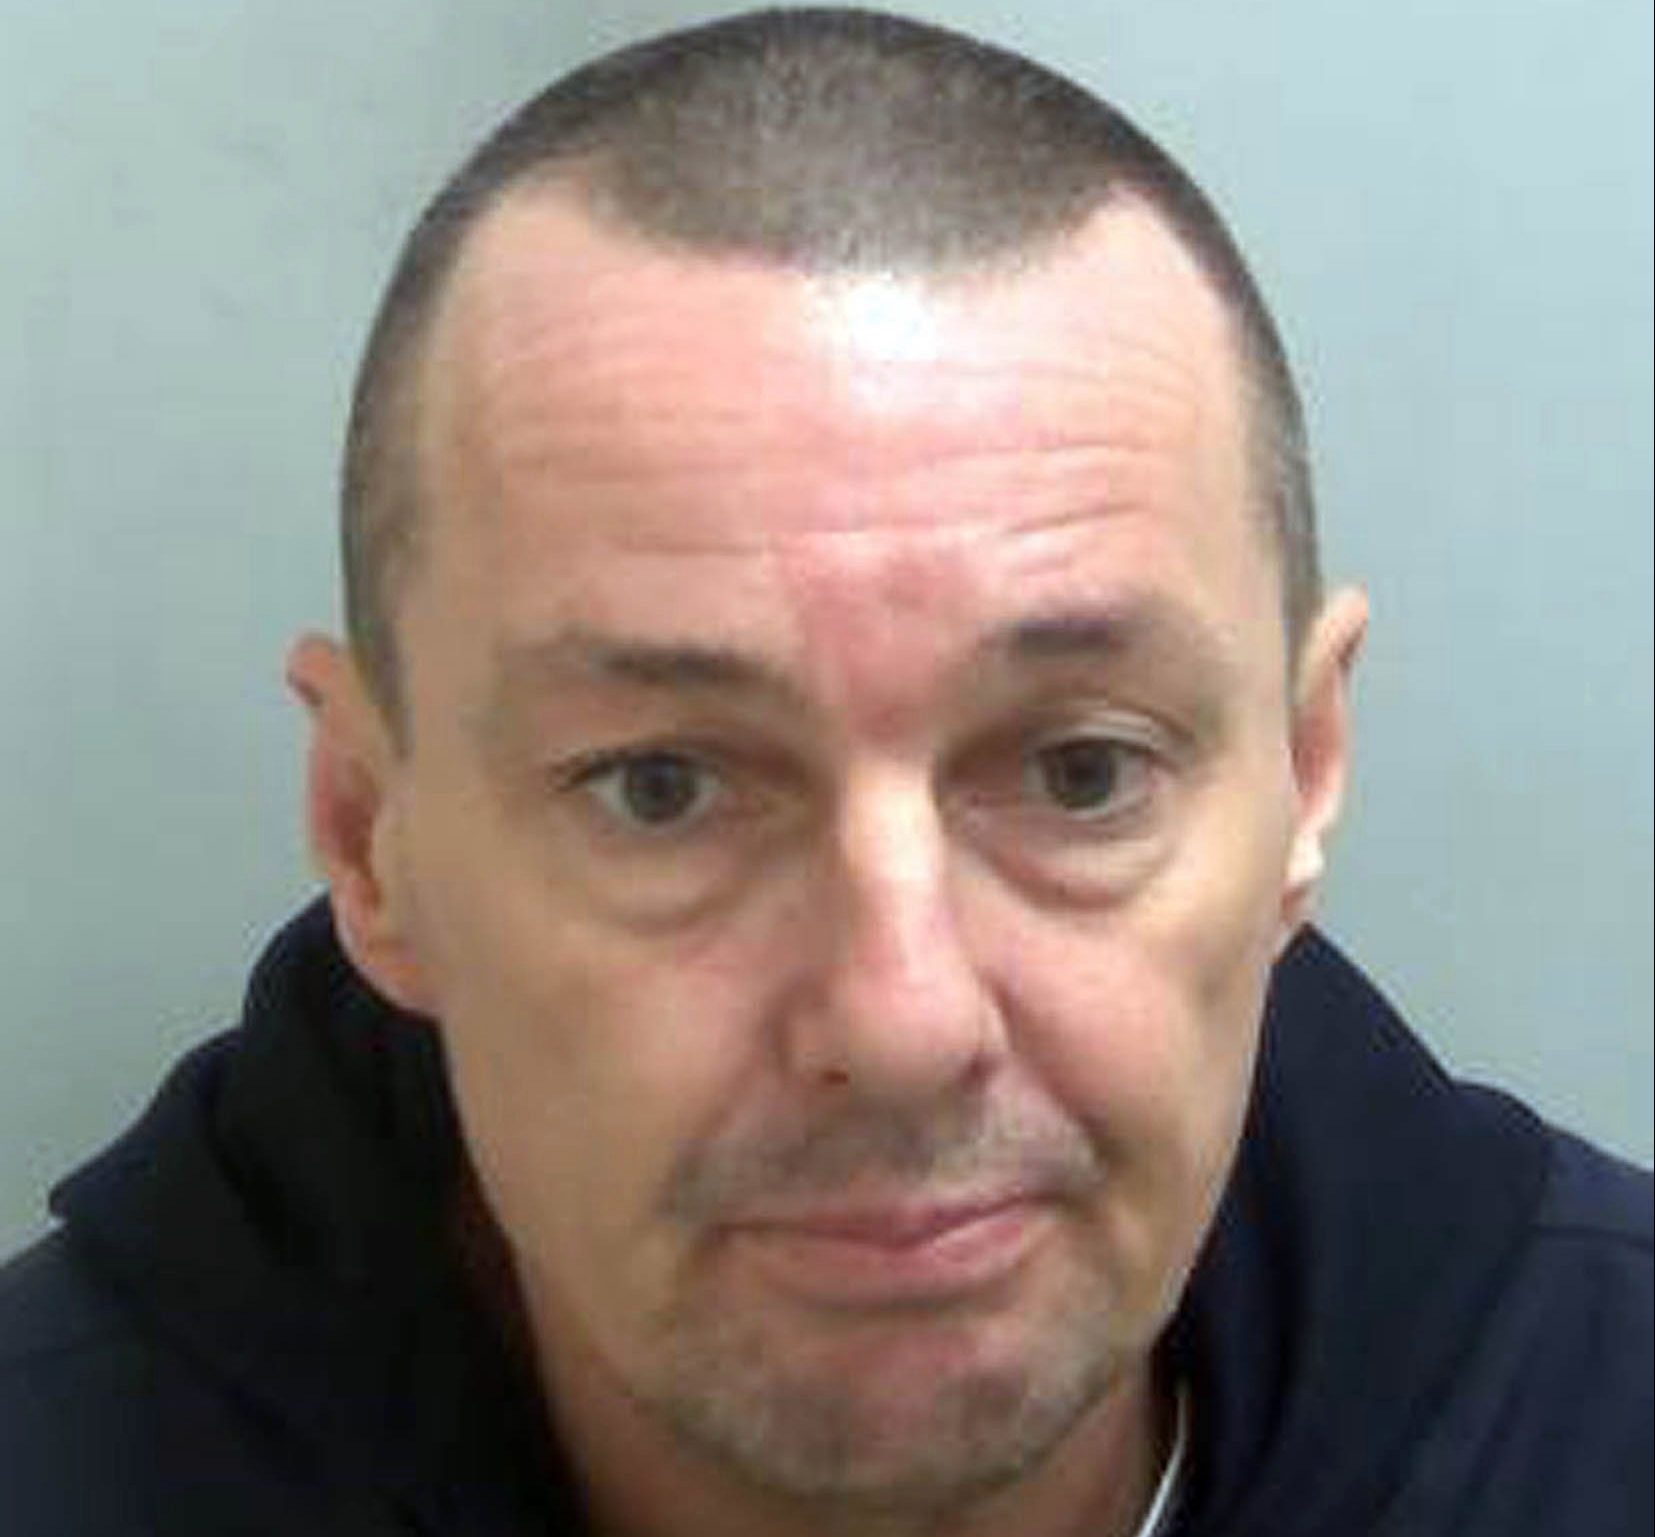 Undated handout photo issued by the National Crime Agency (NCA) of organised crime group boss Richard Wakeling, 52, from Brentwood, Essex, who is facing an 11-year jail term for trying to import drugs, and who has been on the run for more than a year. PRESS ASSOCIATION Photo. Issue date: Monday April 15, 2019. Wakeling, tried to import ?8million of liquid amphetamine into the UK in April 2016. He fled before his trial began and was sentenced to 11 years in his absence at Chelmsford Crown Court on April 9 last year. On Monday the National Crime Agency released CCTV footage of him leaving his Brentwood home on January 5 last year as investigators continue to try to track him down. See PA story POLICE Wakeling. Photo credit should read: National Crime Agency/PA Wire NOTE TO EDITORS: This handout photo may only be used in for editorial reporting purposes for the contemporaneous illustration of events, things or the people in the image or facts mentioned in the caption. Reuse of the picture may require further permission from the copyright holder.